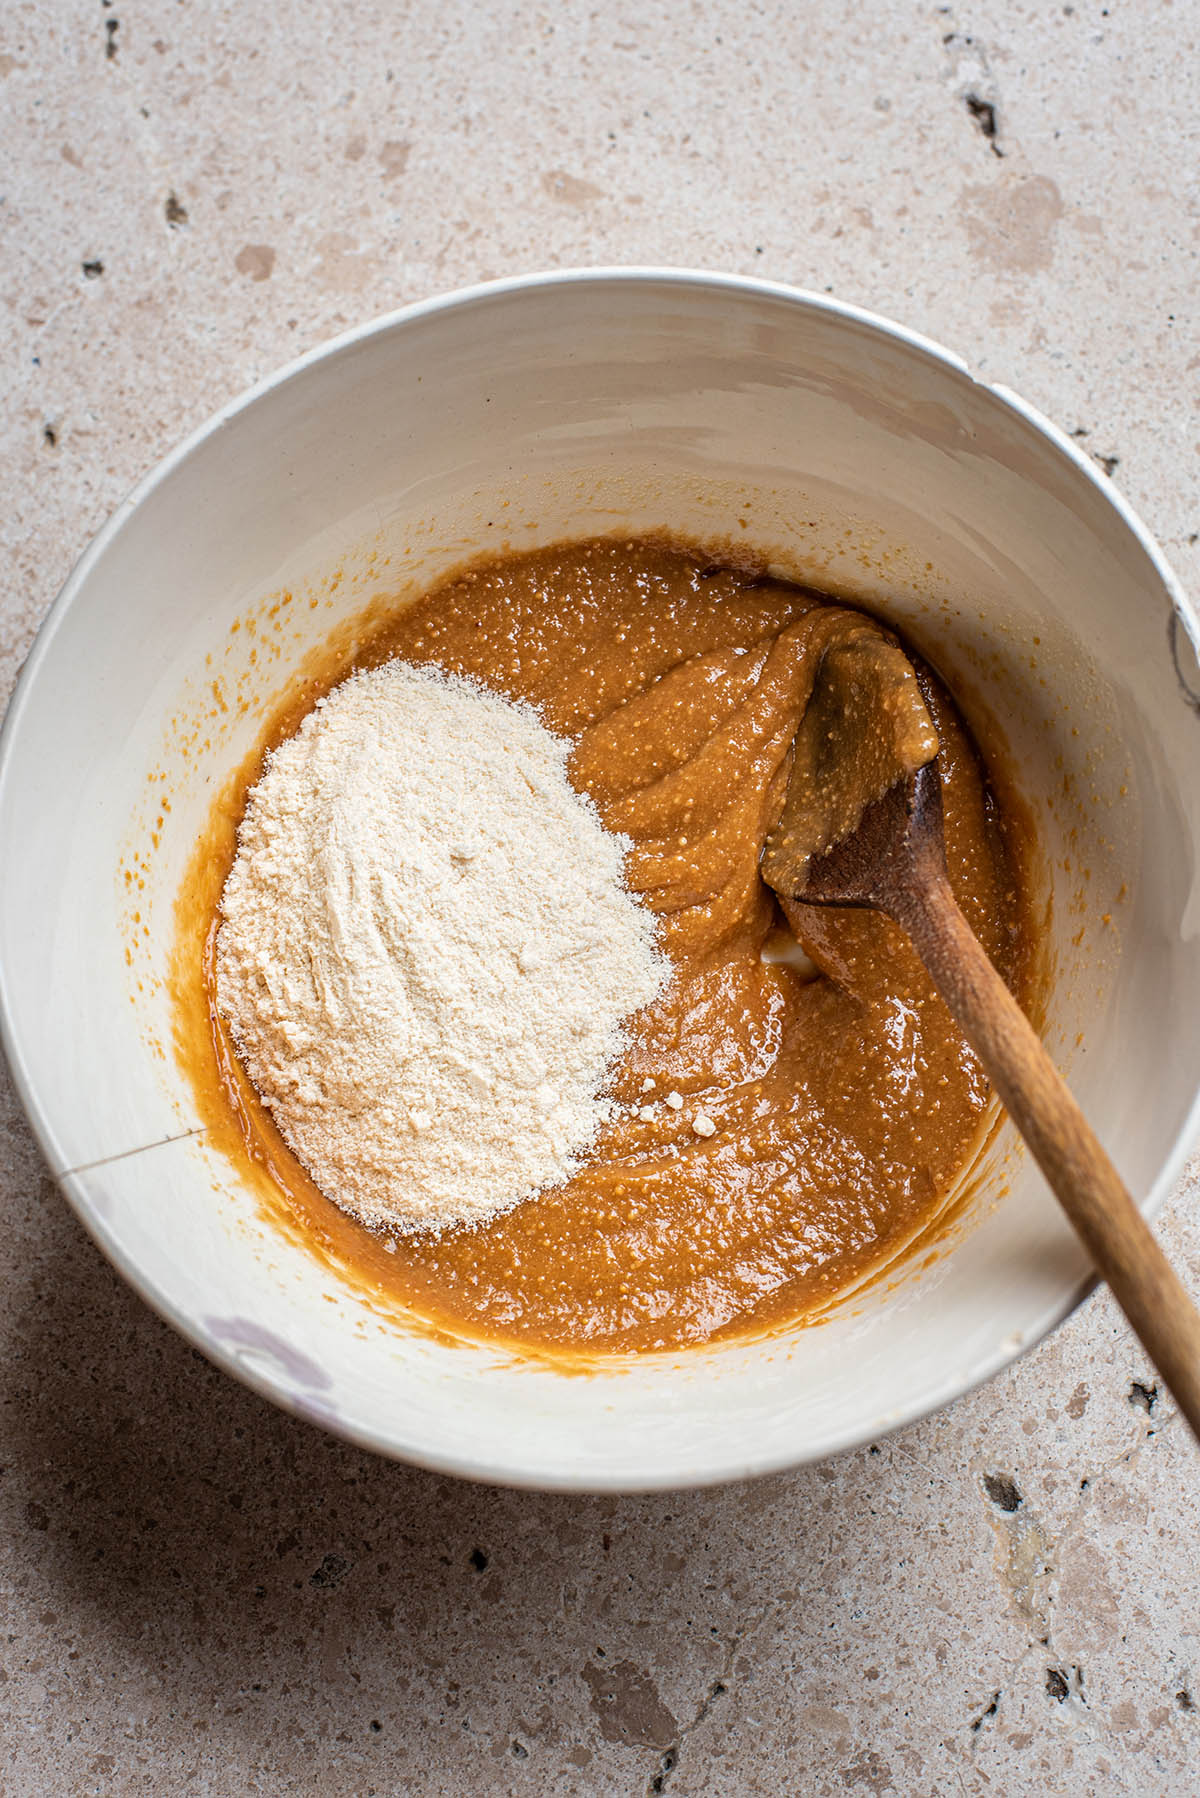 Coconut flour added to peanut butter mixture in a bowl.